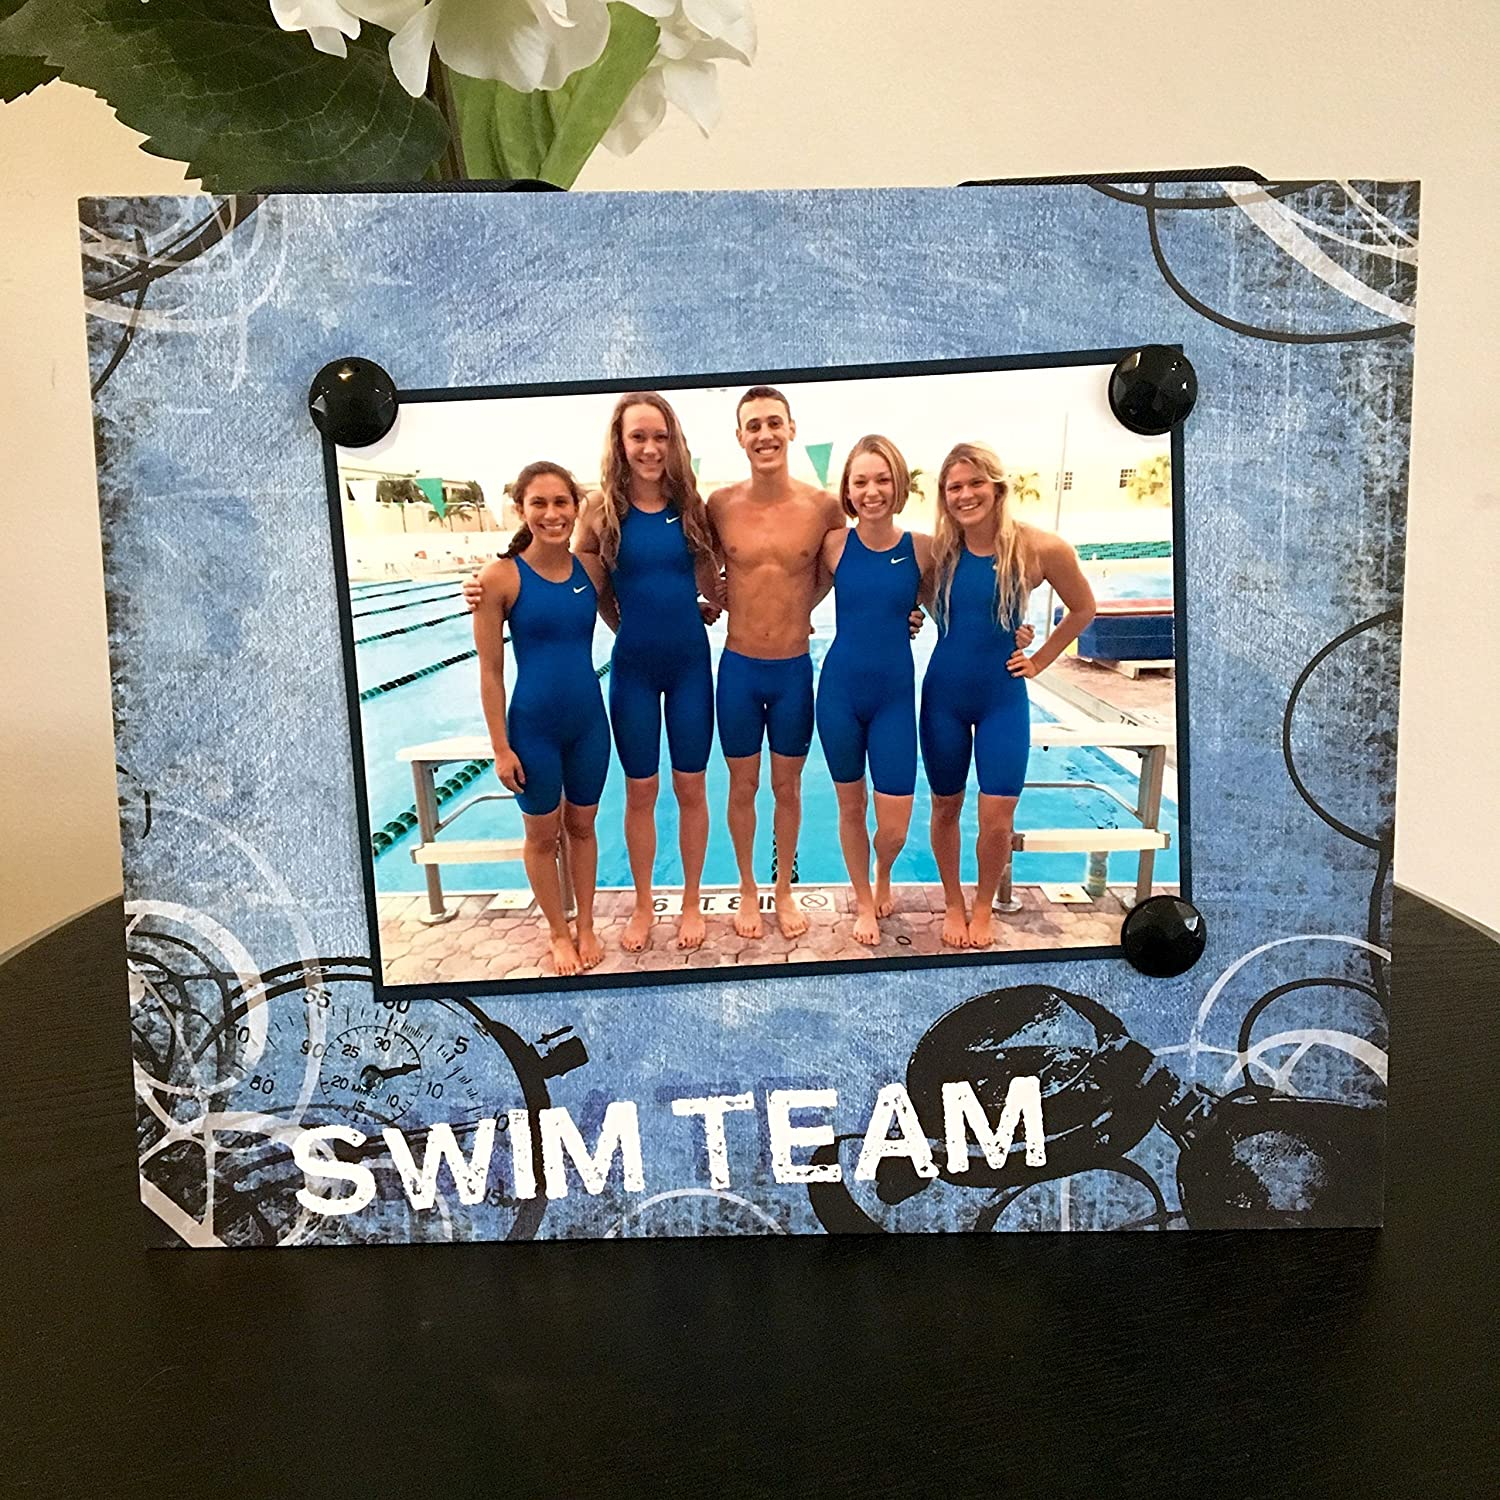 Swim Team sports coach captain mom gift jeweled Cheap mail order specialty Max 57% OFF store handmad dad pool